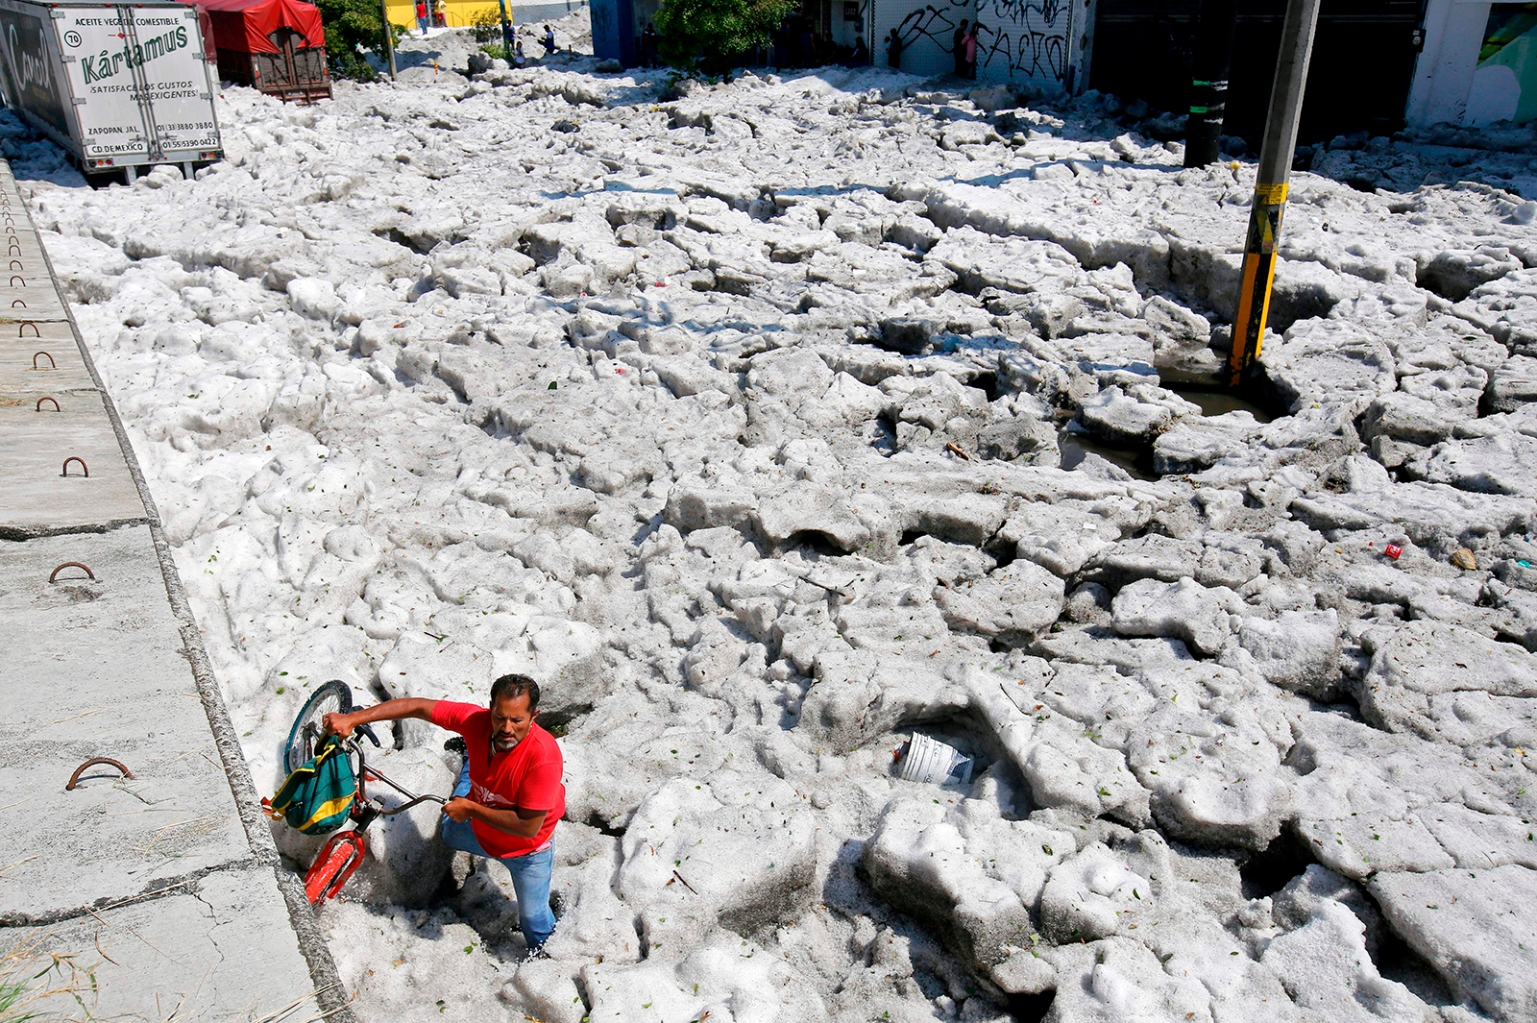 A man with a bike walks on hail in Guadalajara, Mexico, on June 30. The accumulation of hail in the streets buried vehicles and damaged homes. ULISES RUIZ/AFP/Getty Images